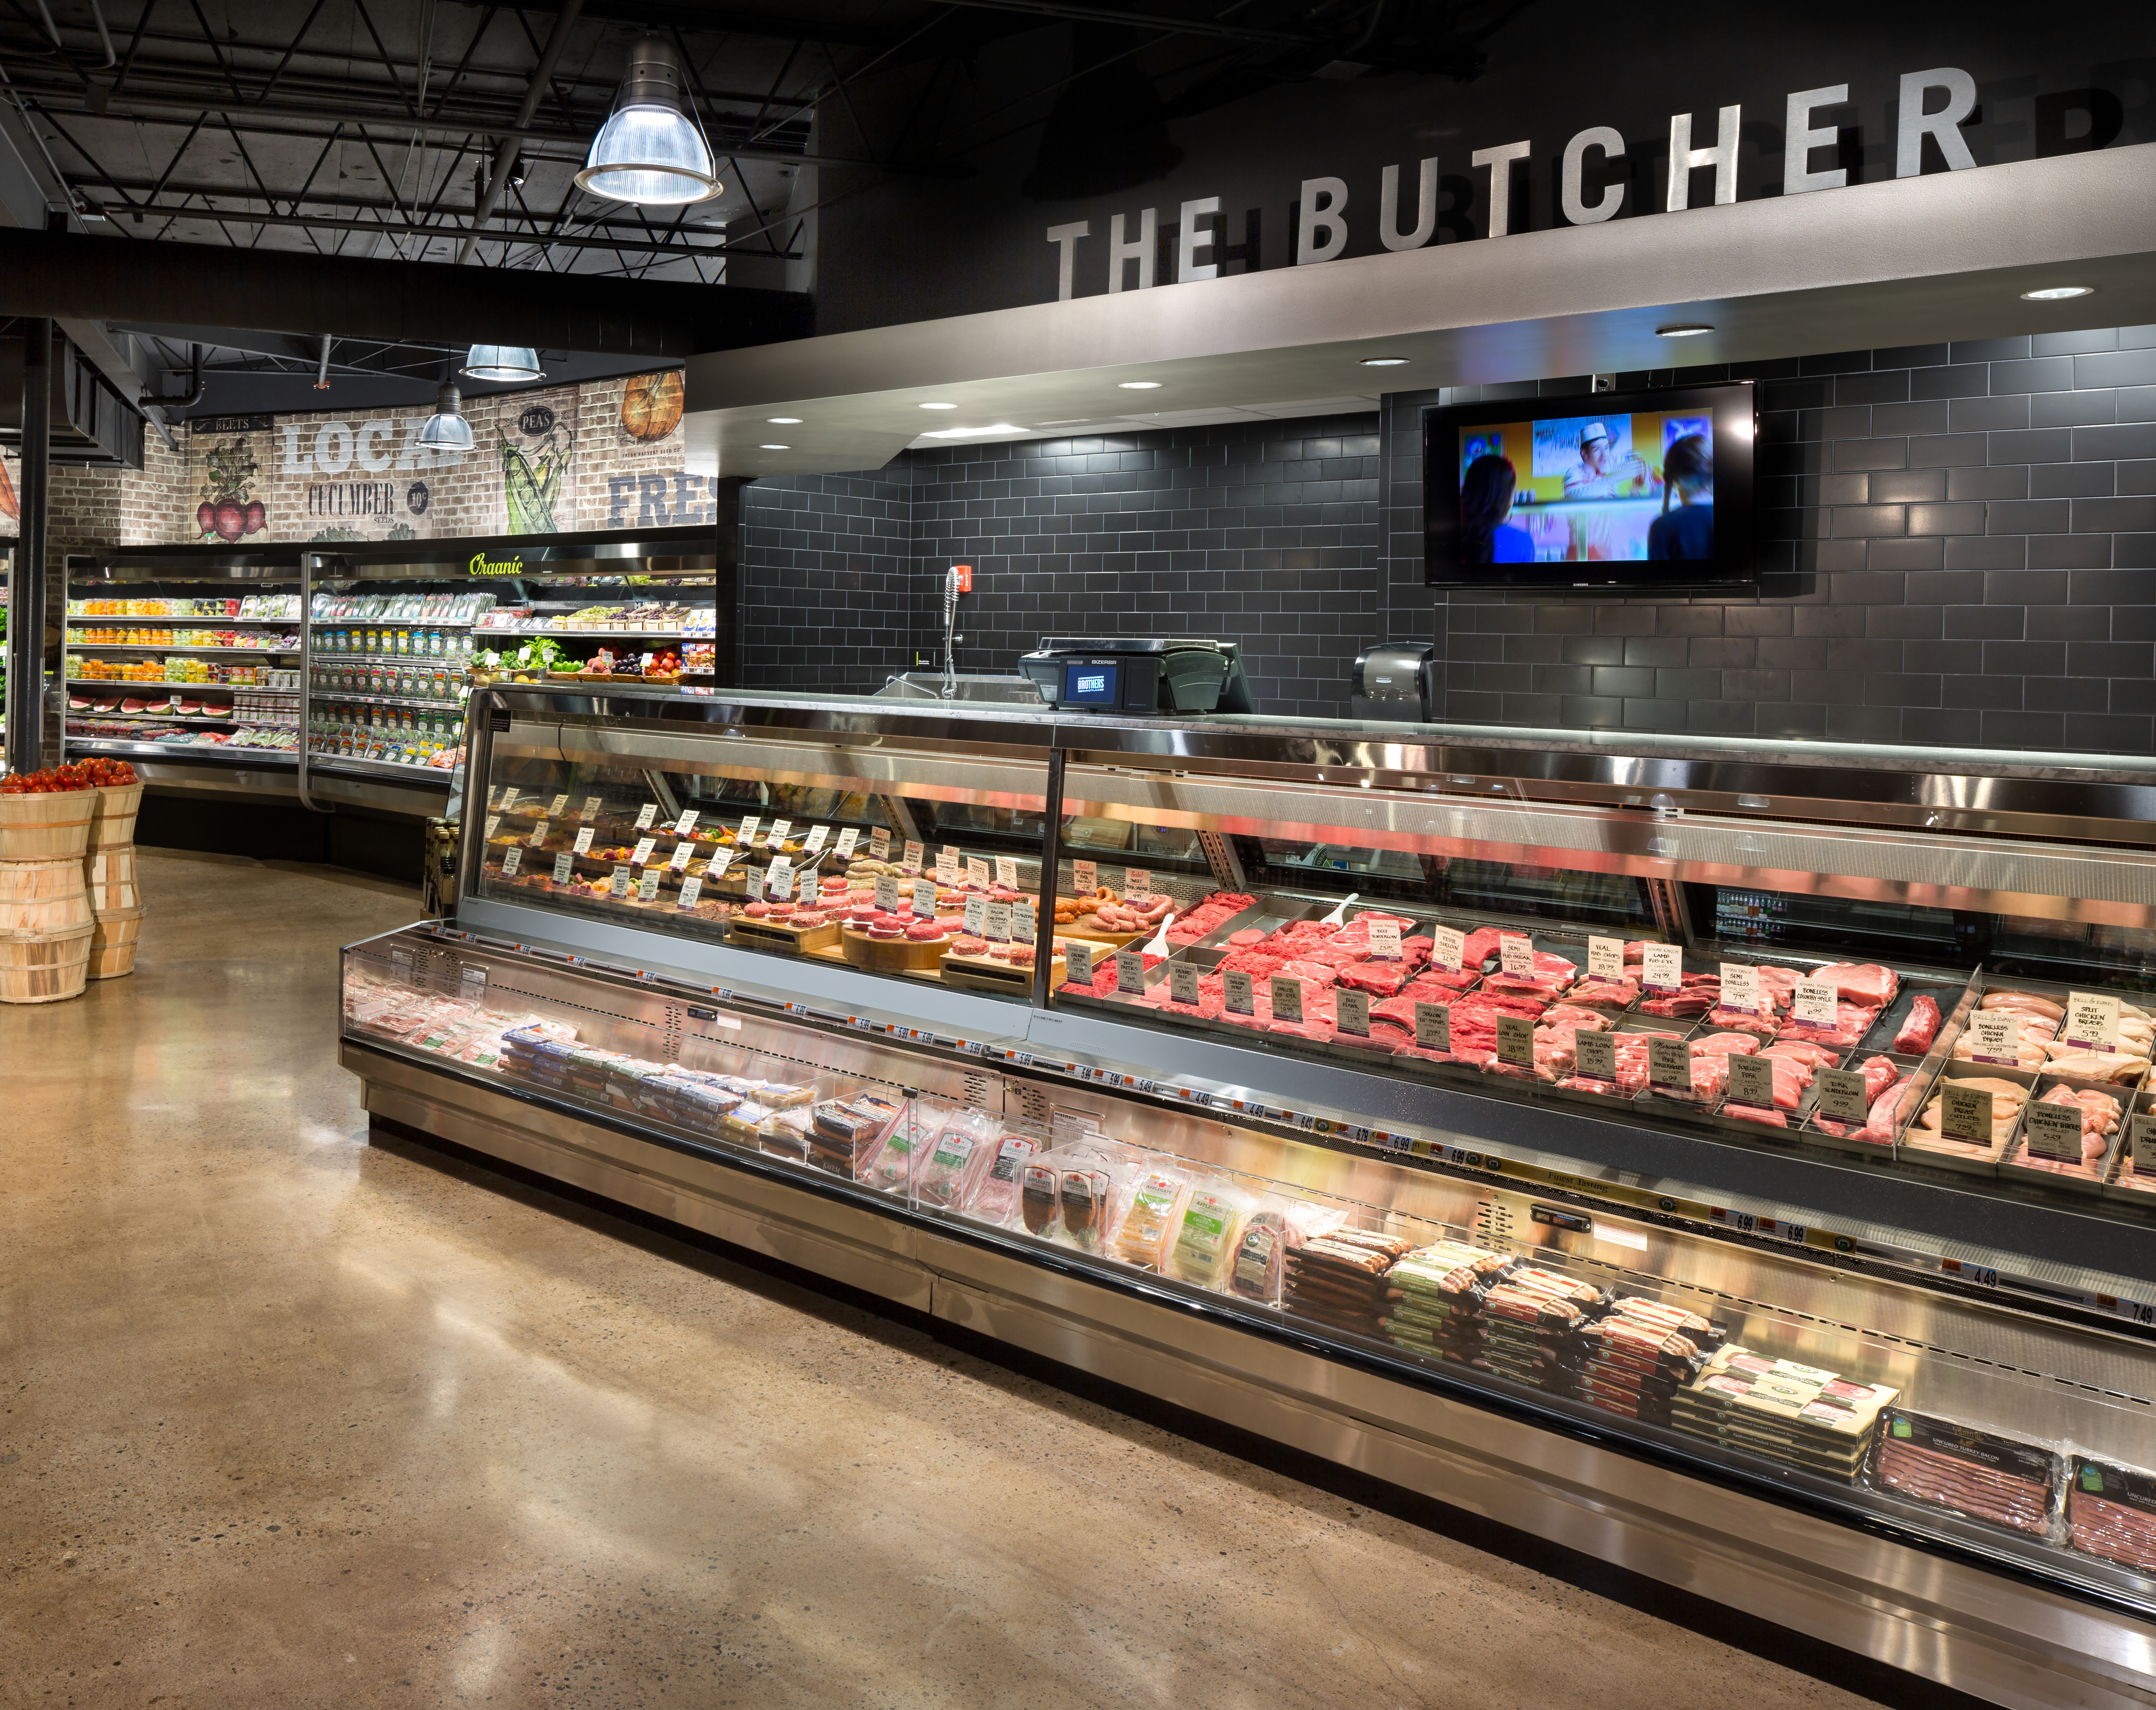 The butcher counter at Brothers Marketplace in Medfield, MA